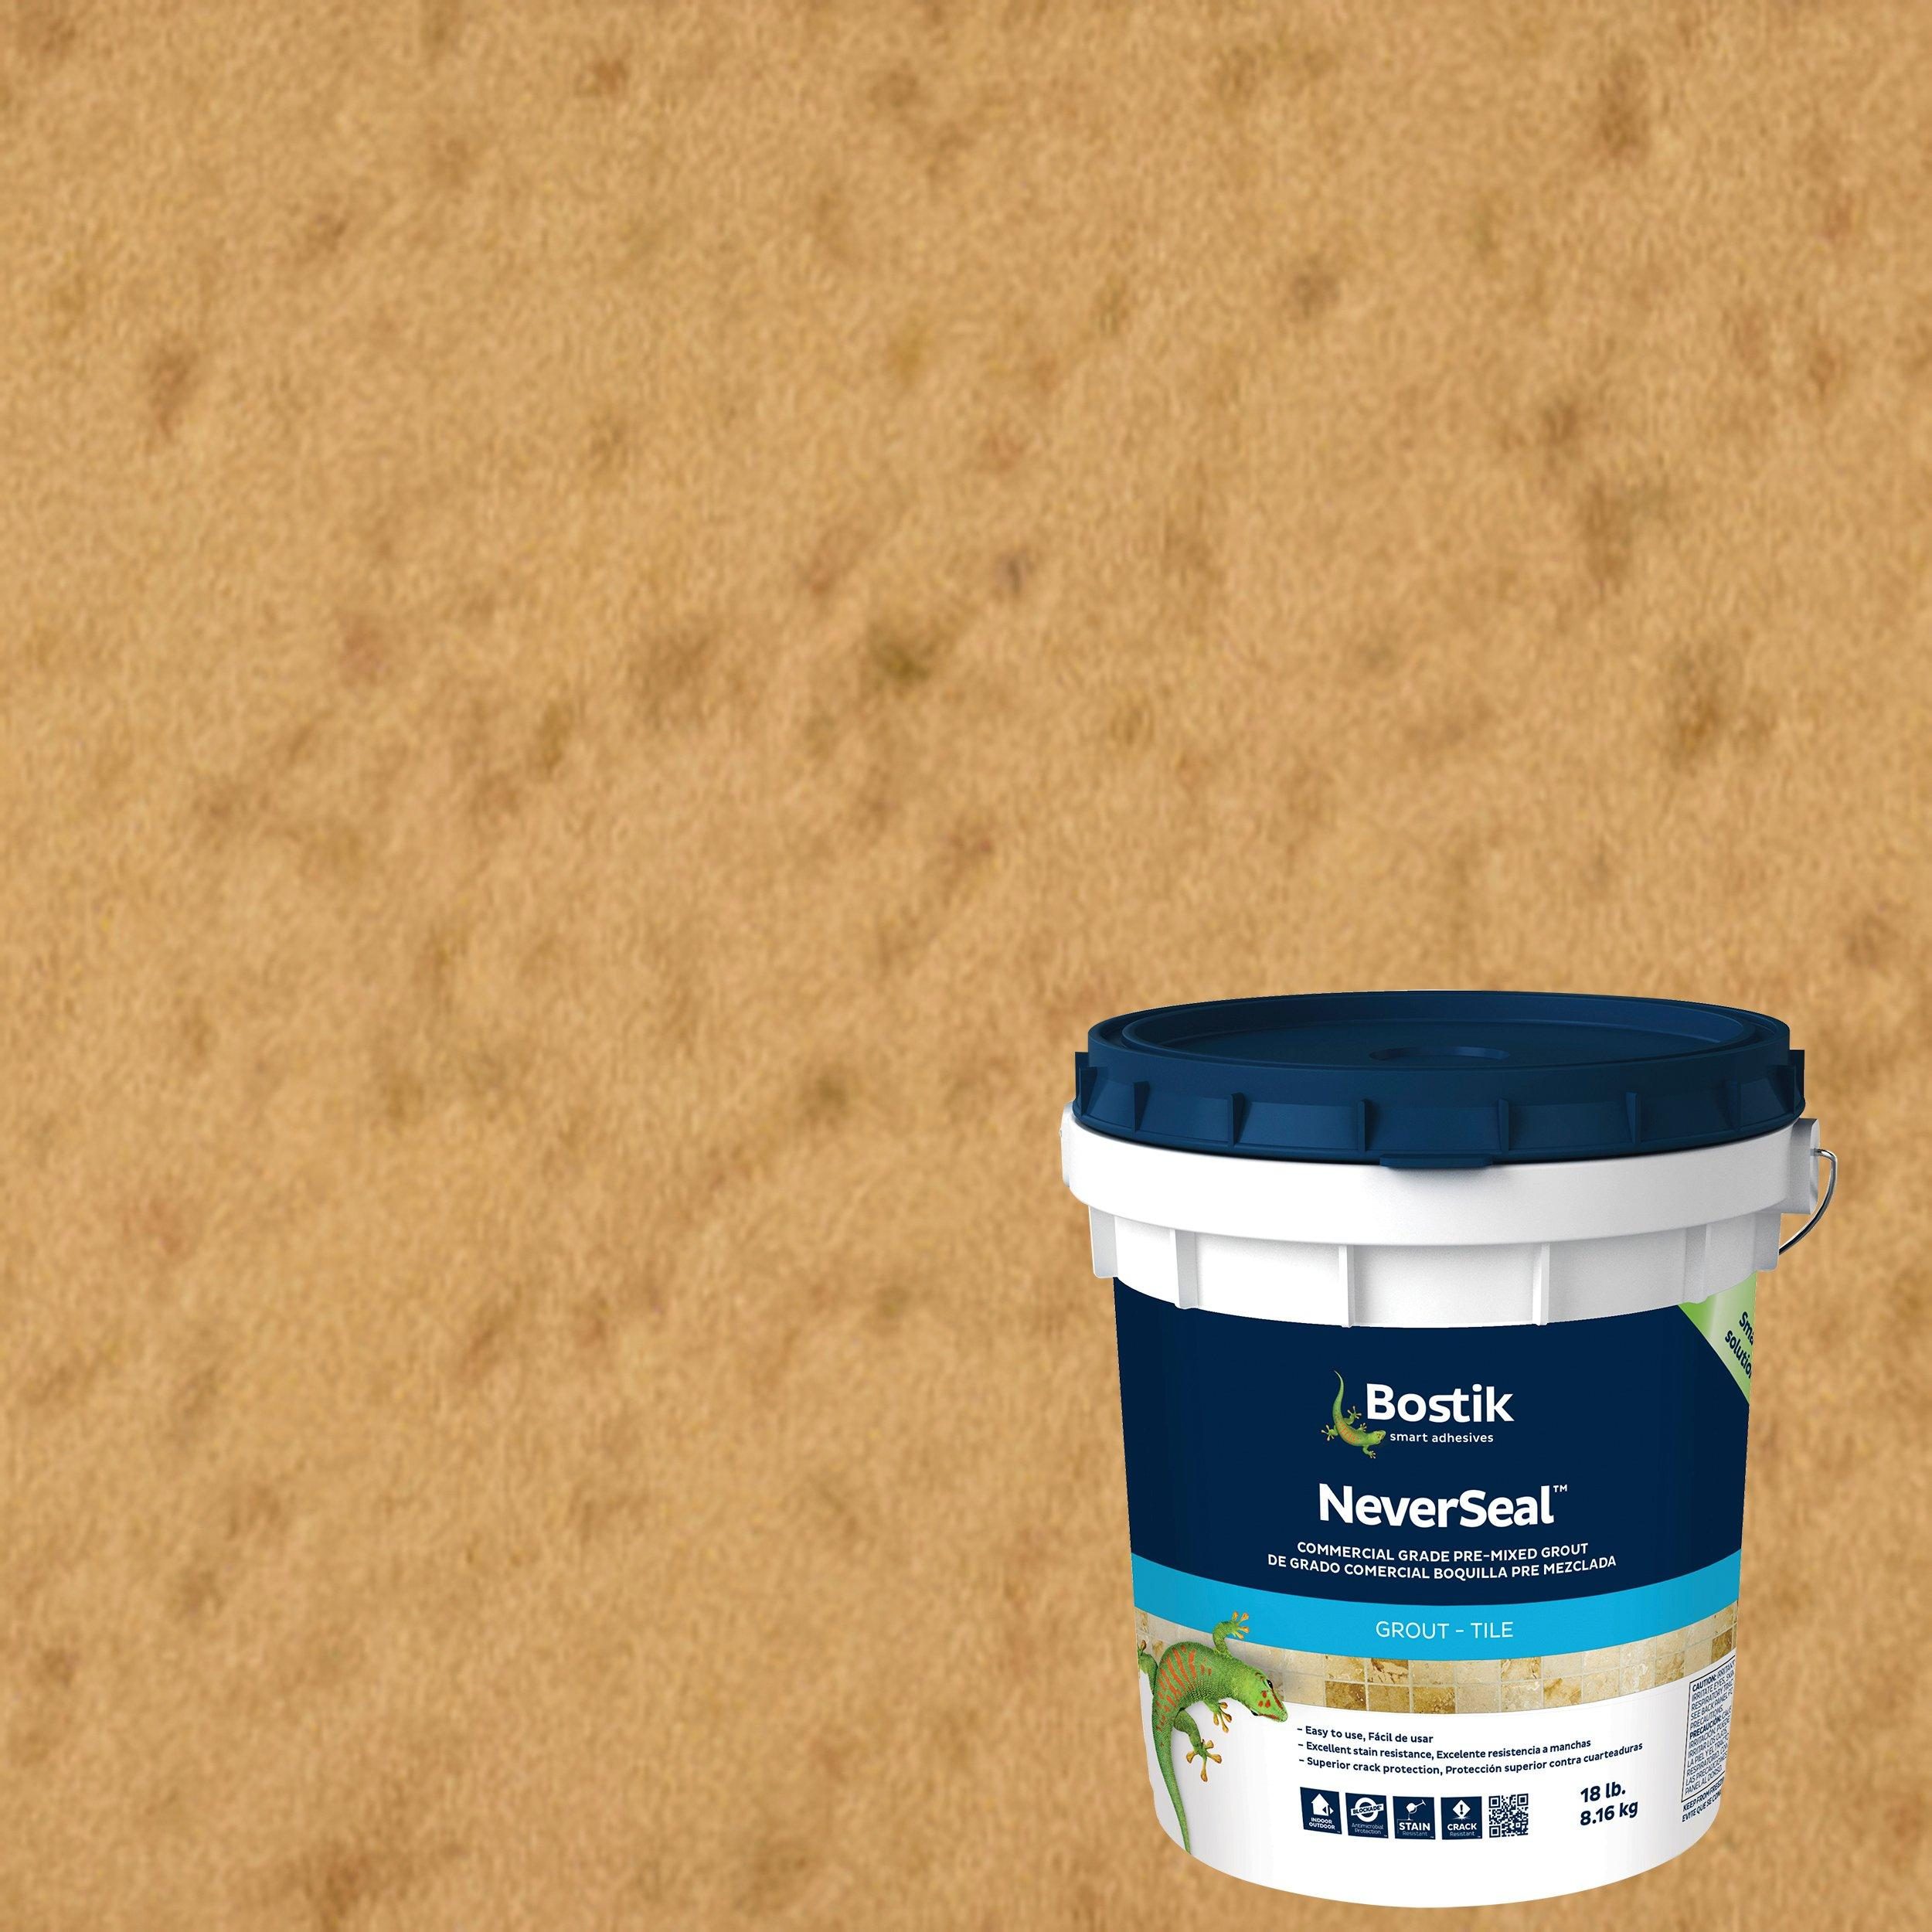 Bostik Neverseal Linen Pre Mixed Commercial Grade Grout 18lb 100077452 Floor And Decor